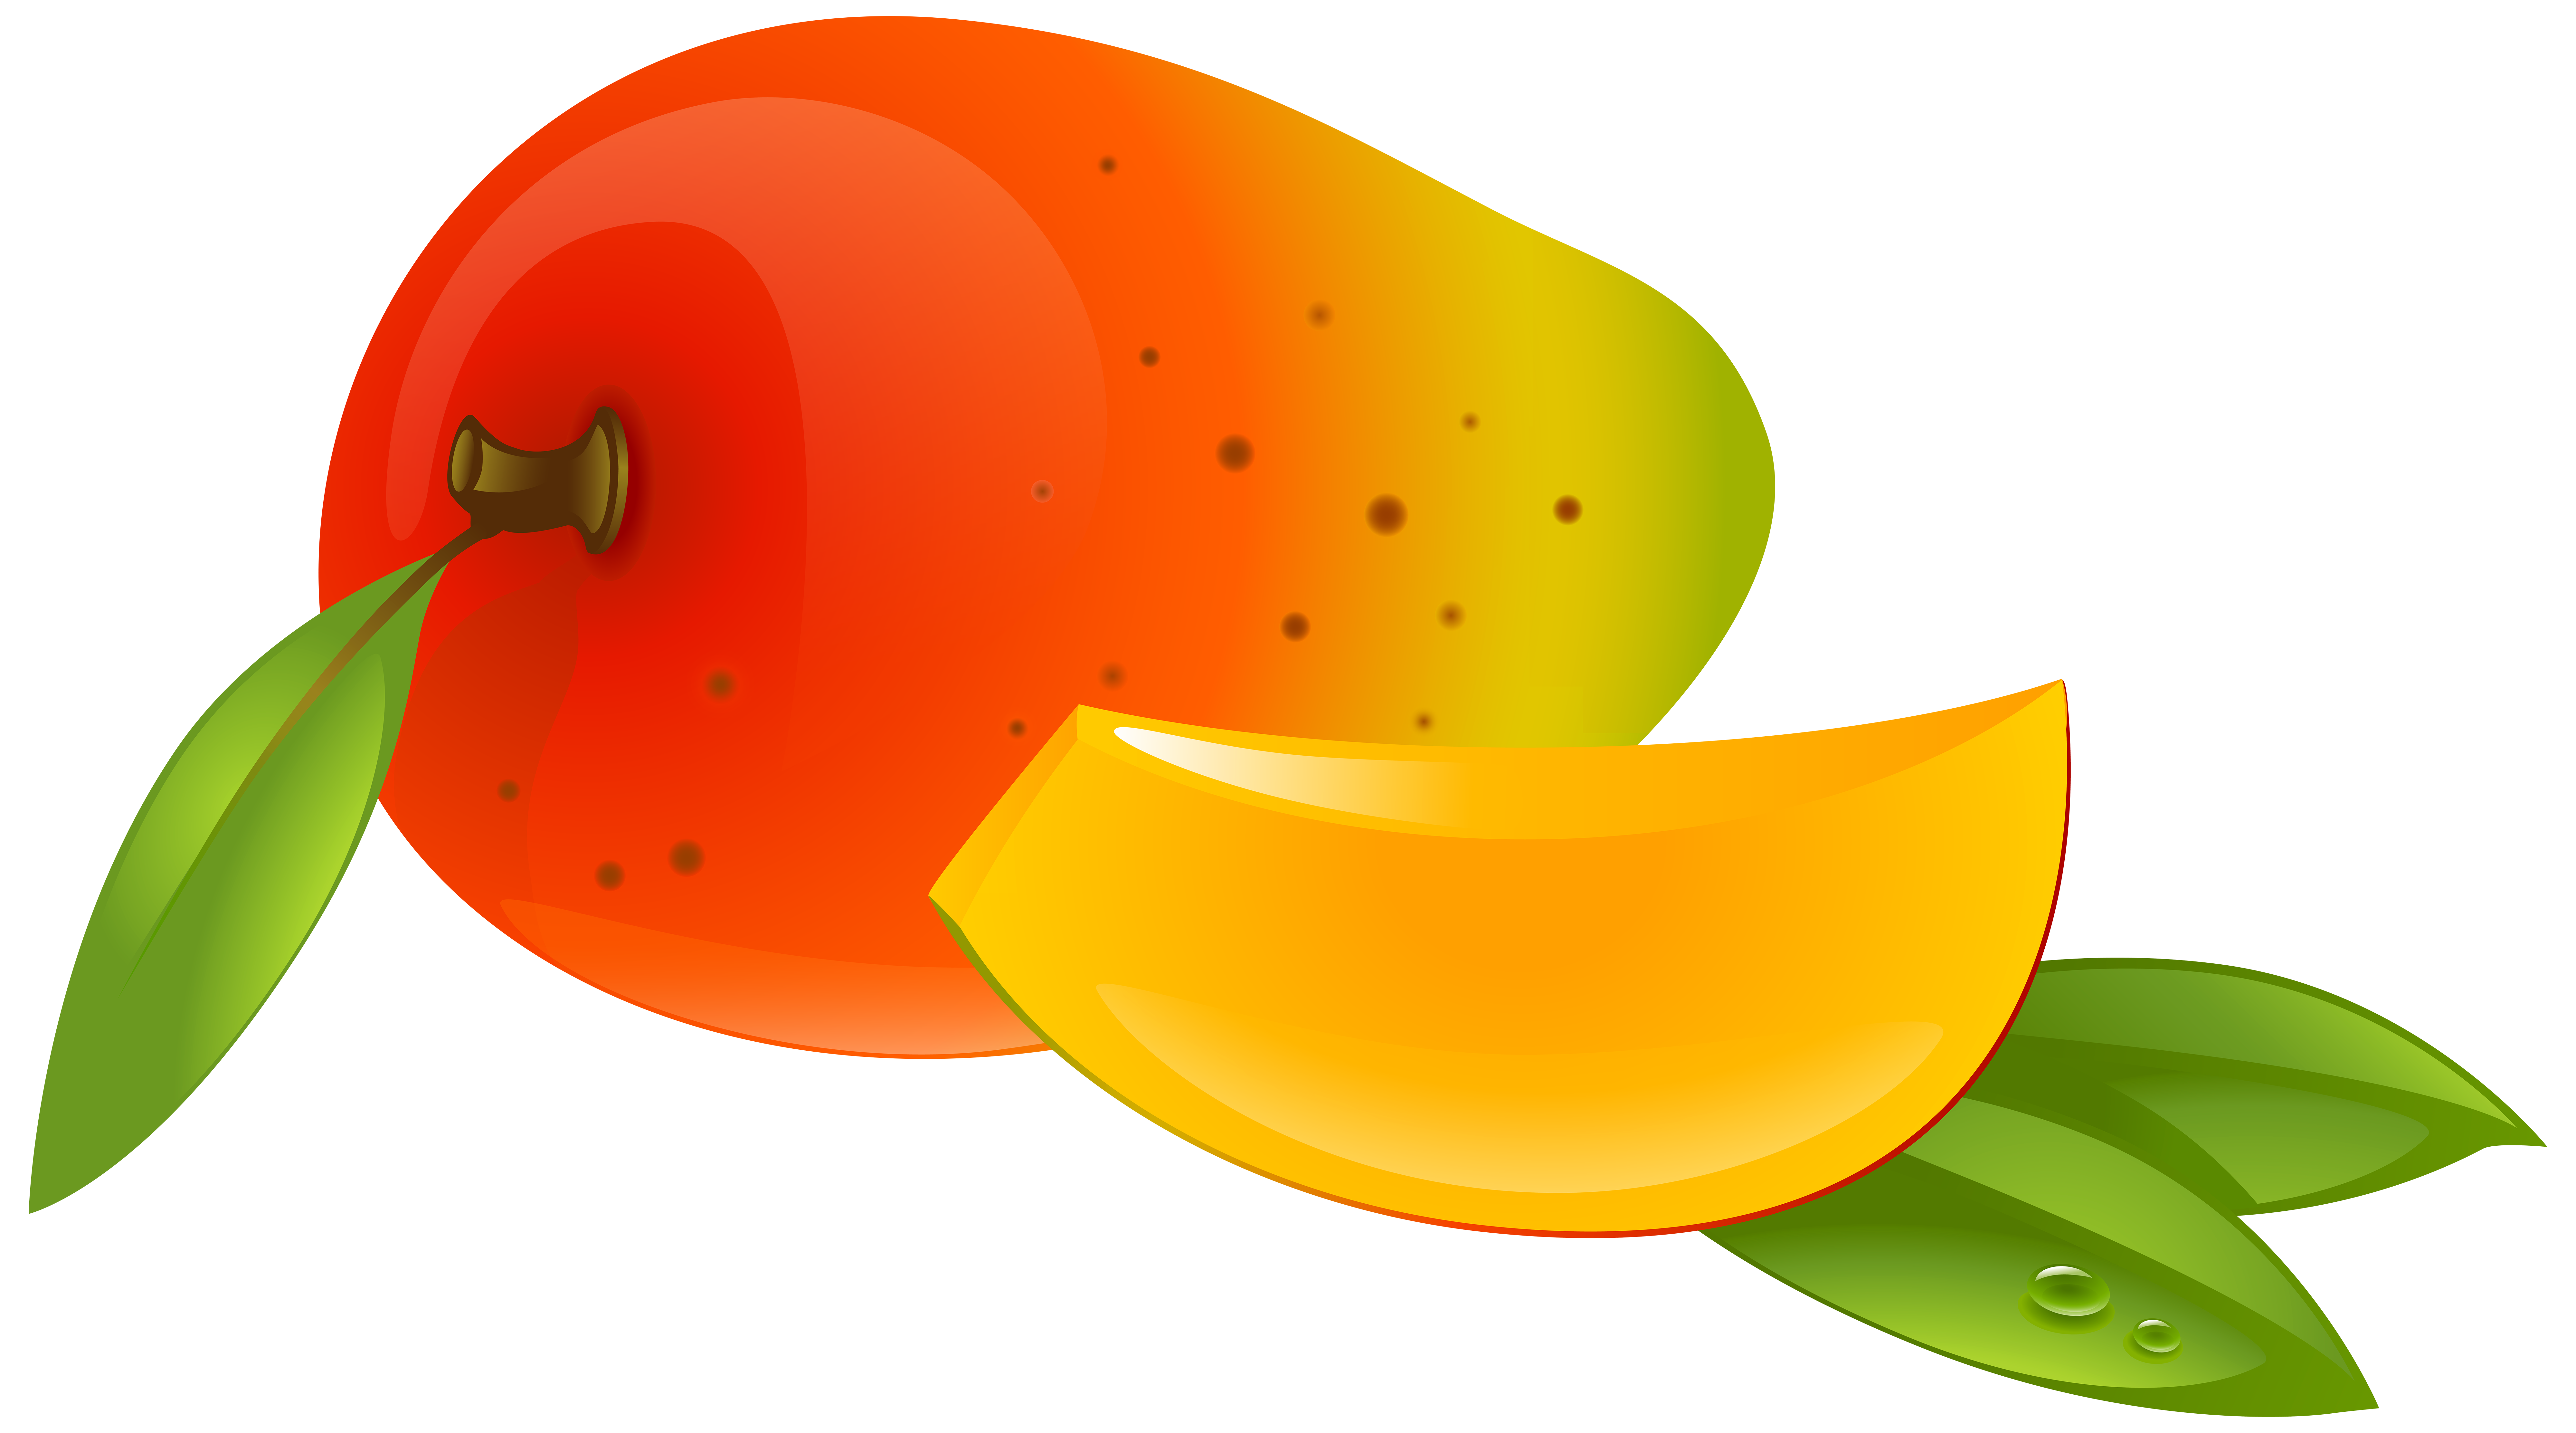 vector royalty free download Mango clipart. Png clip art image